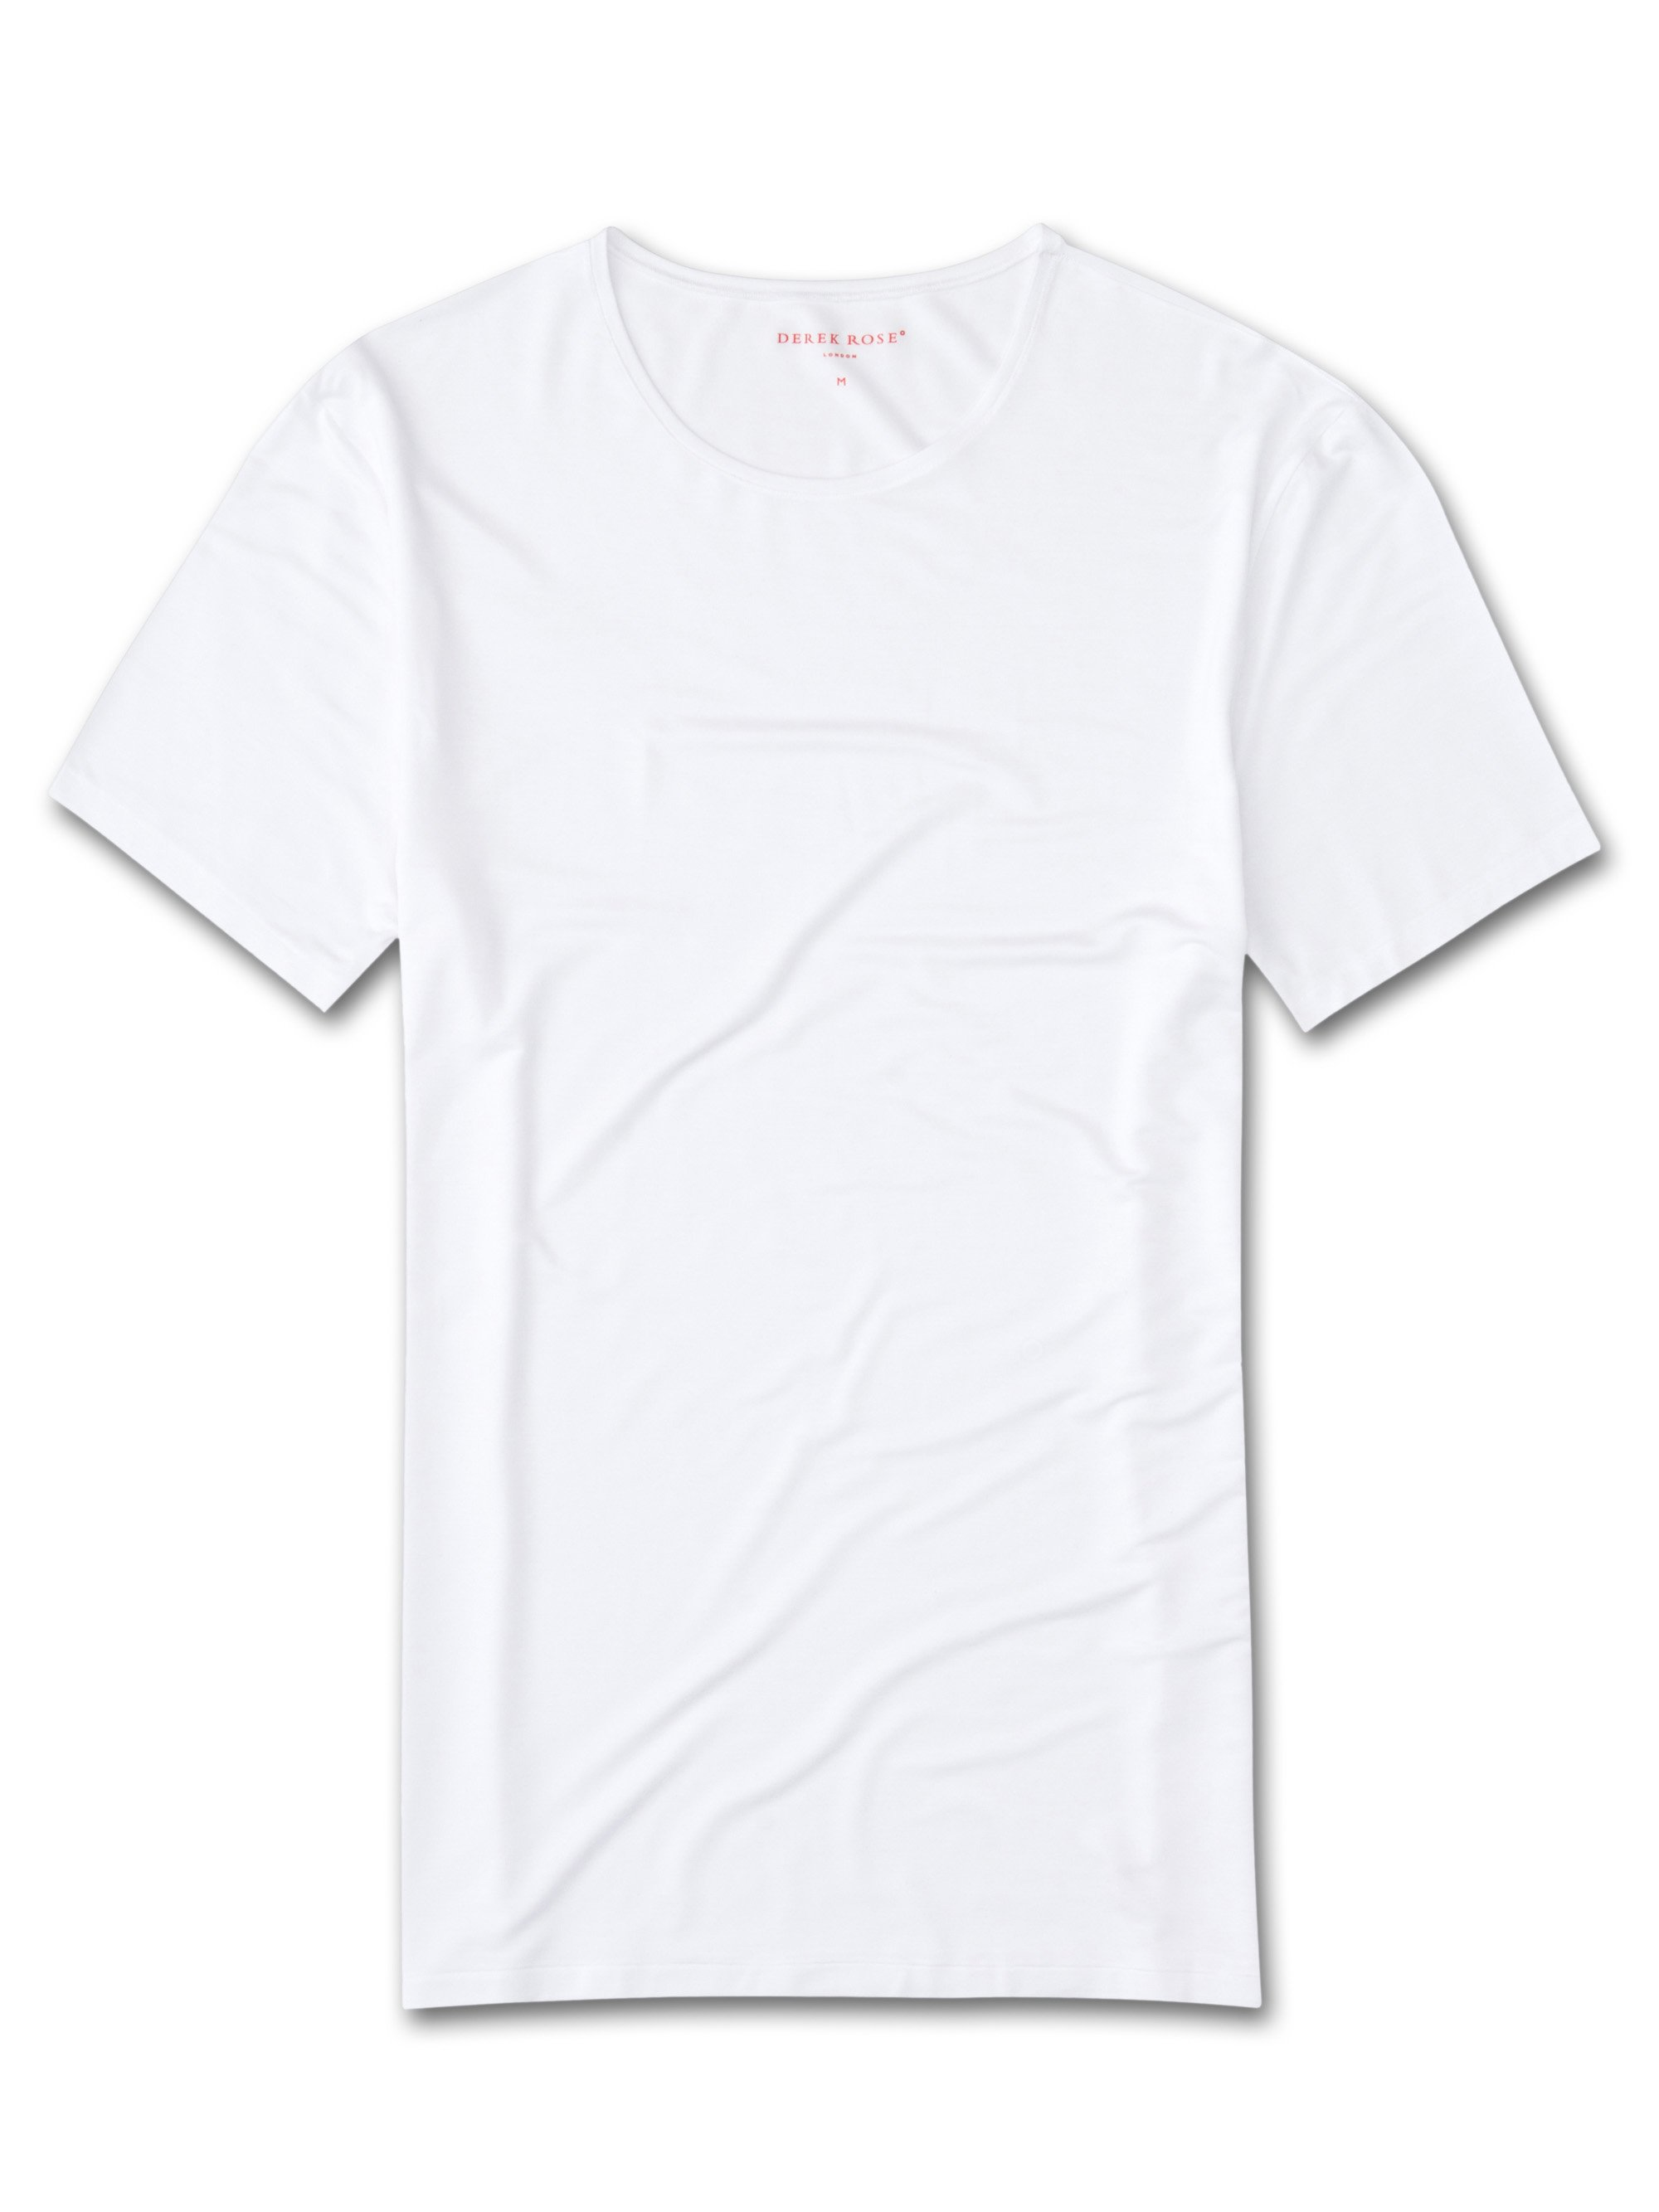 Men's Underwear Crew-Neck T-Shirt Alex Micro Modal Stretch White